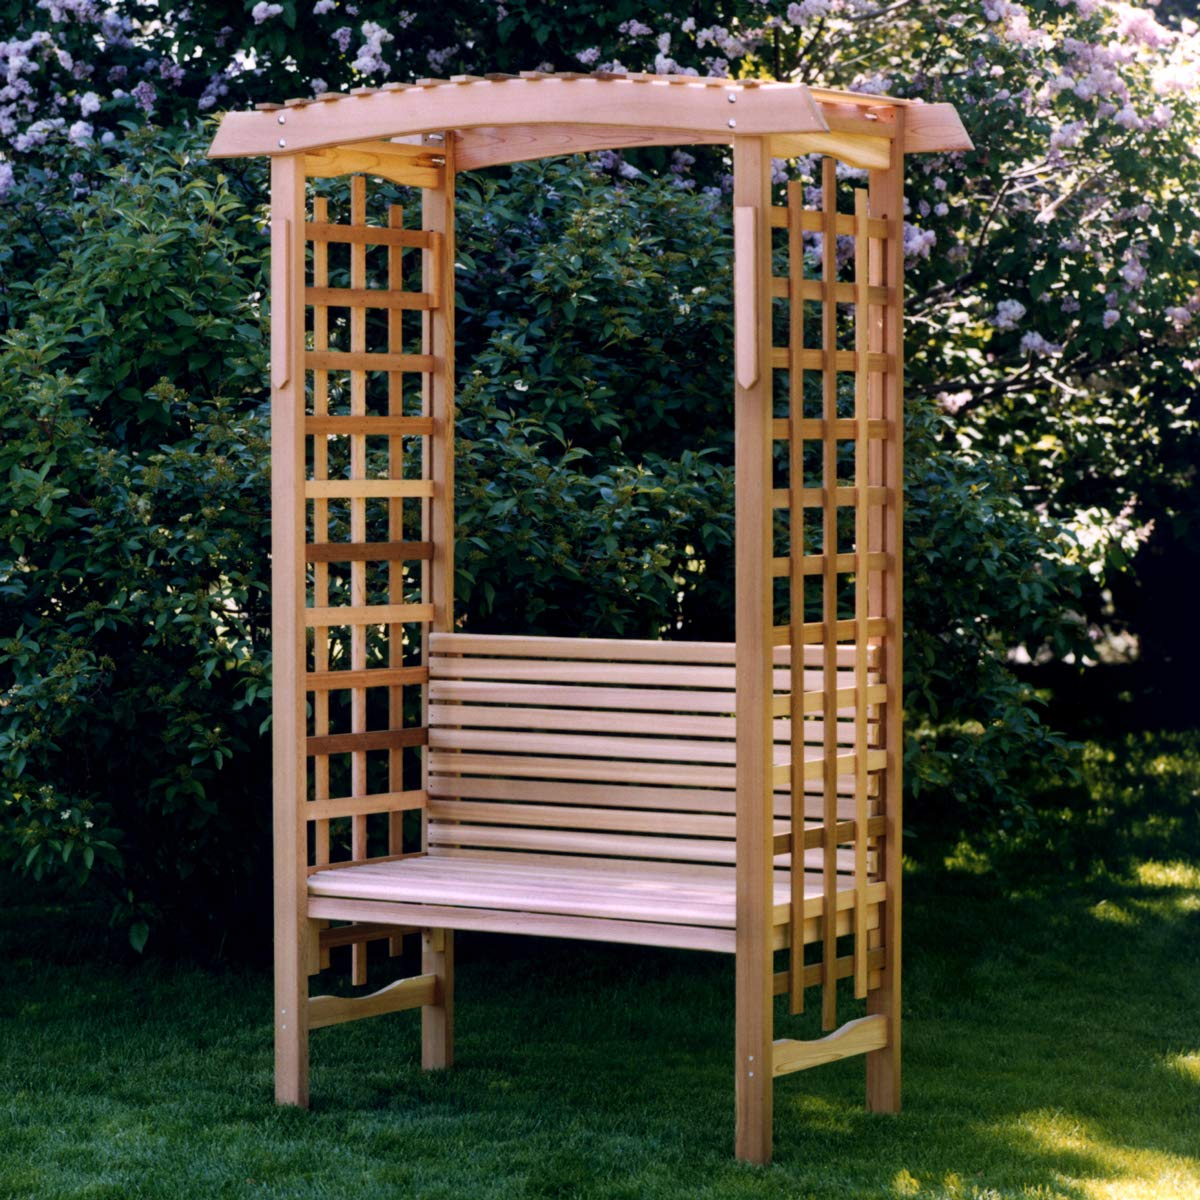 Marvelous All Things Cedar Ga87 B Garden Arbor With Bench Pdpeps Interior Chair Design Pdpepsorg